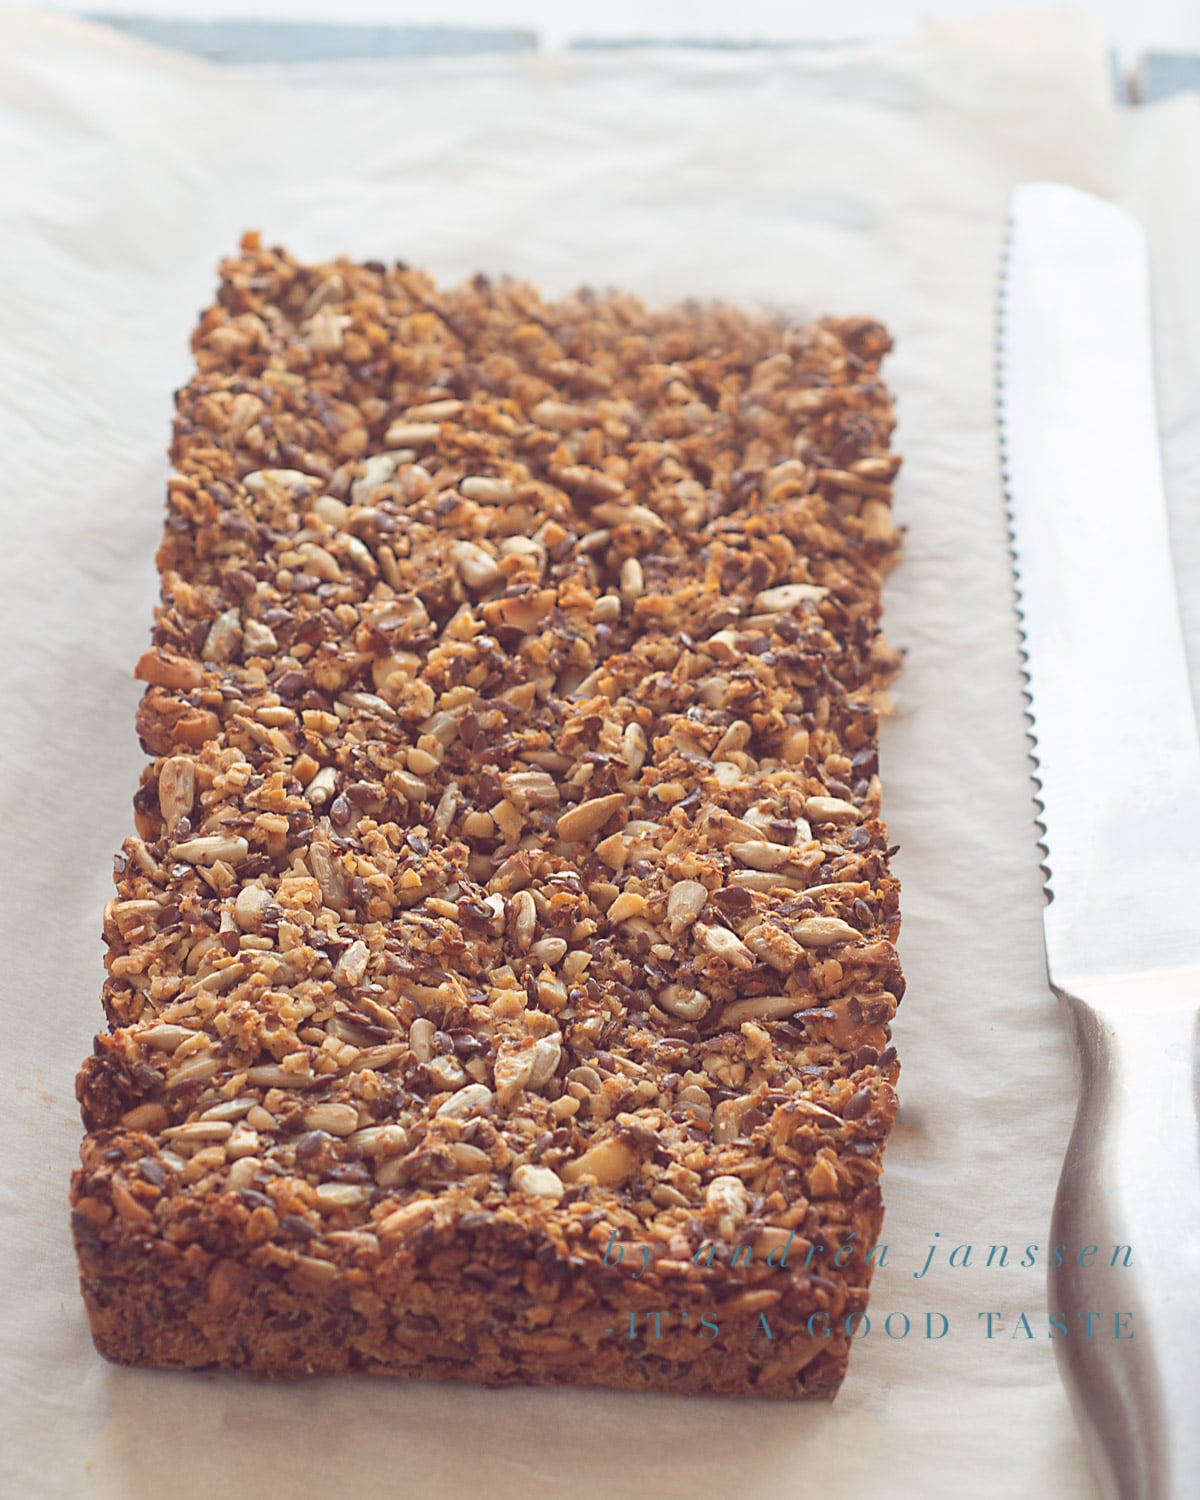 Gluten-free seeds and nut loaf